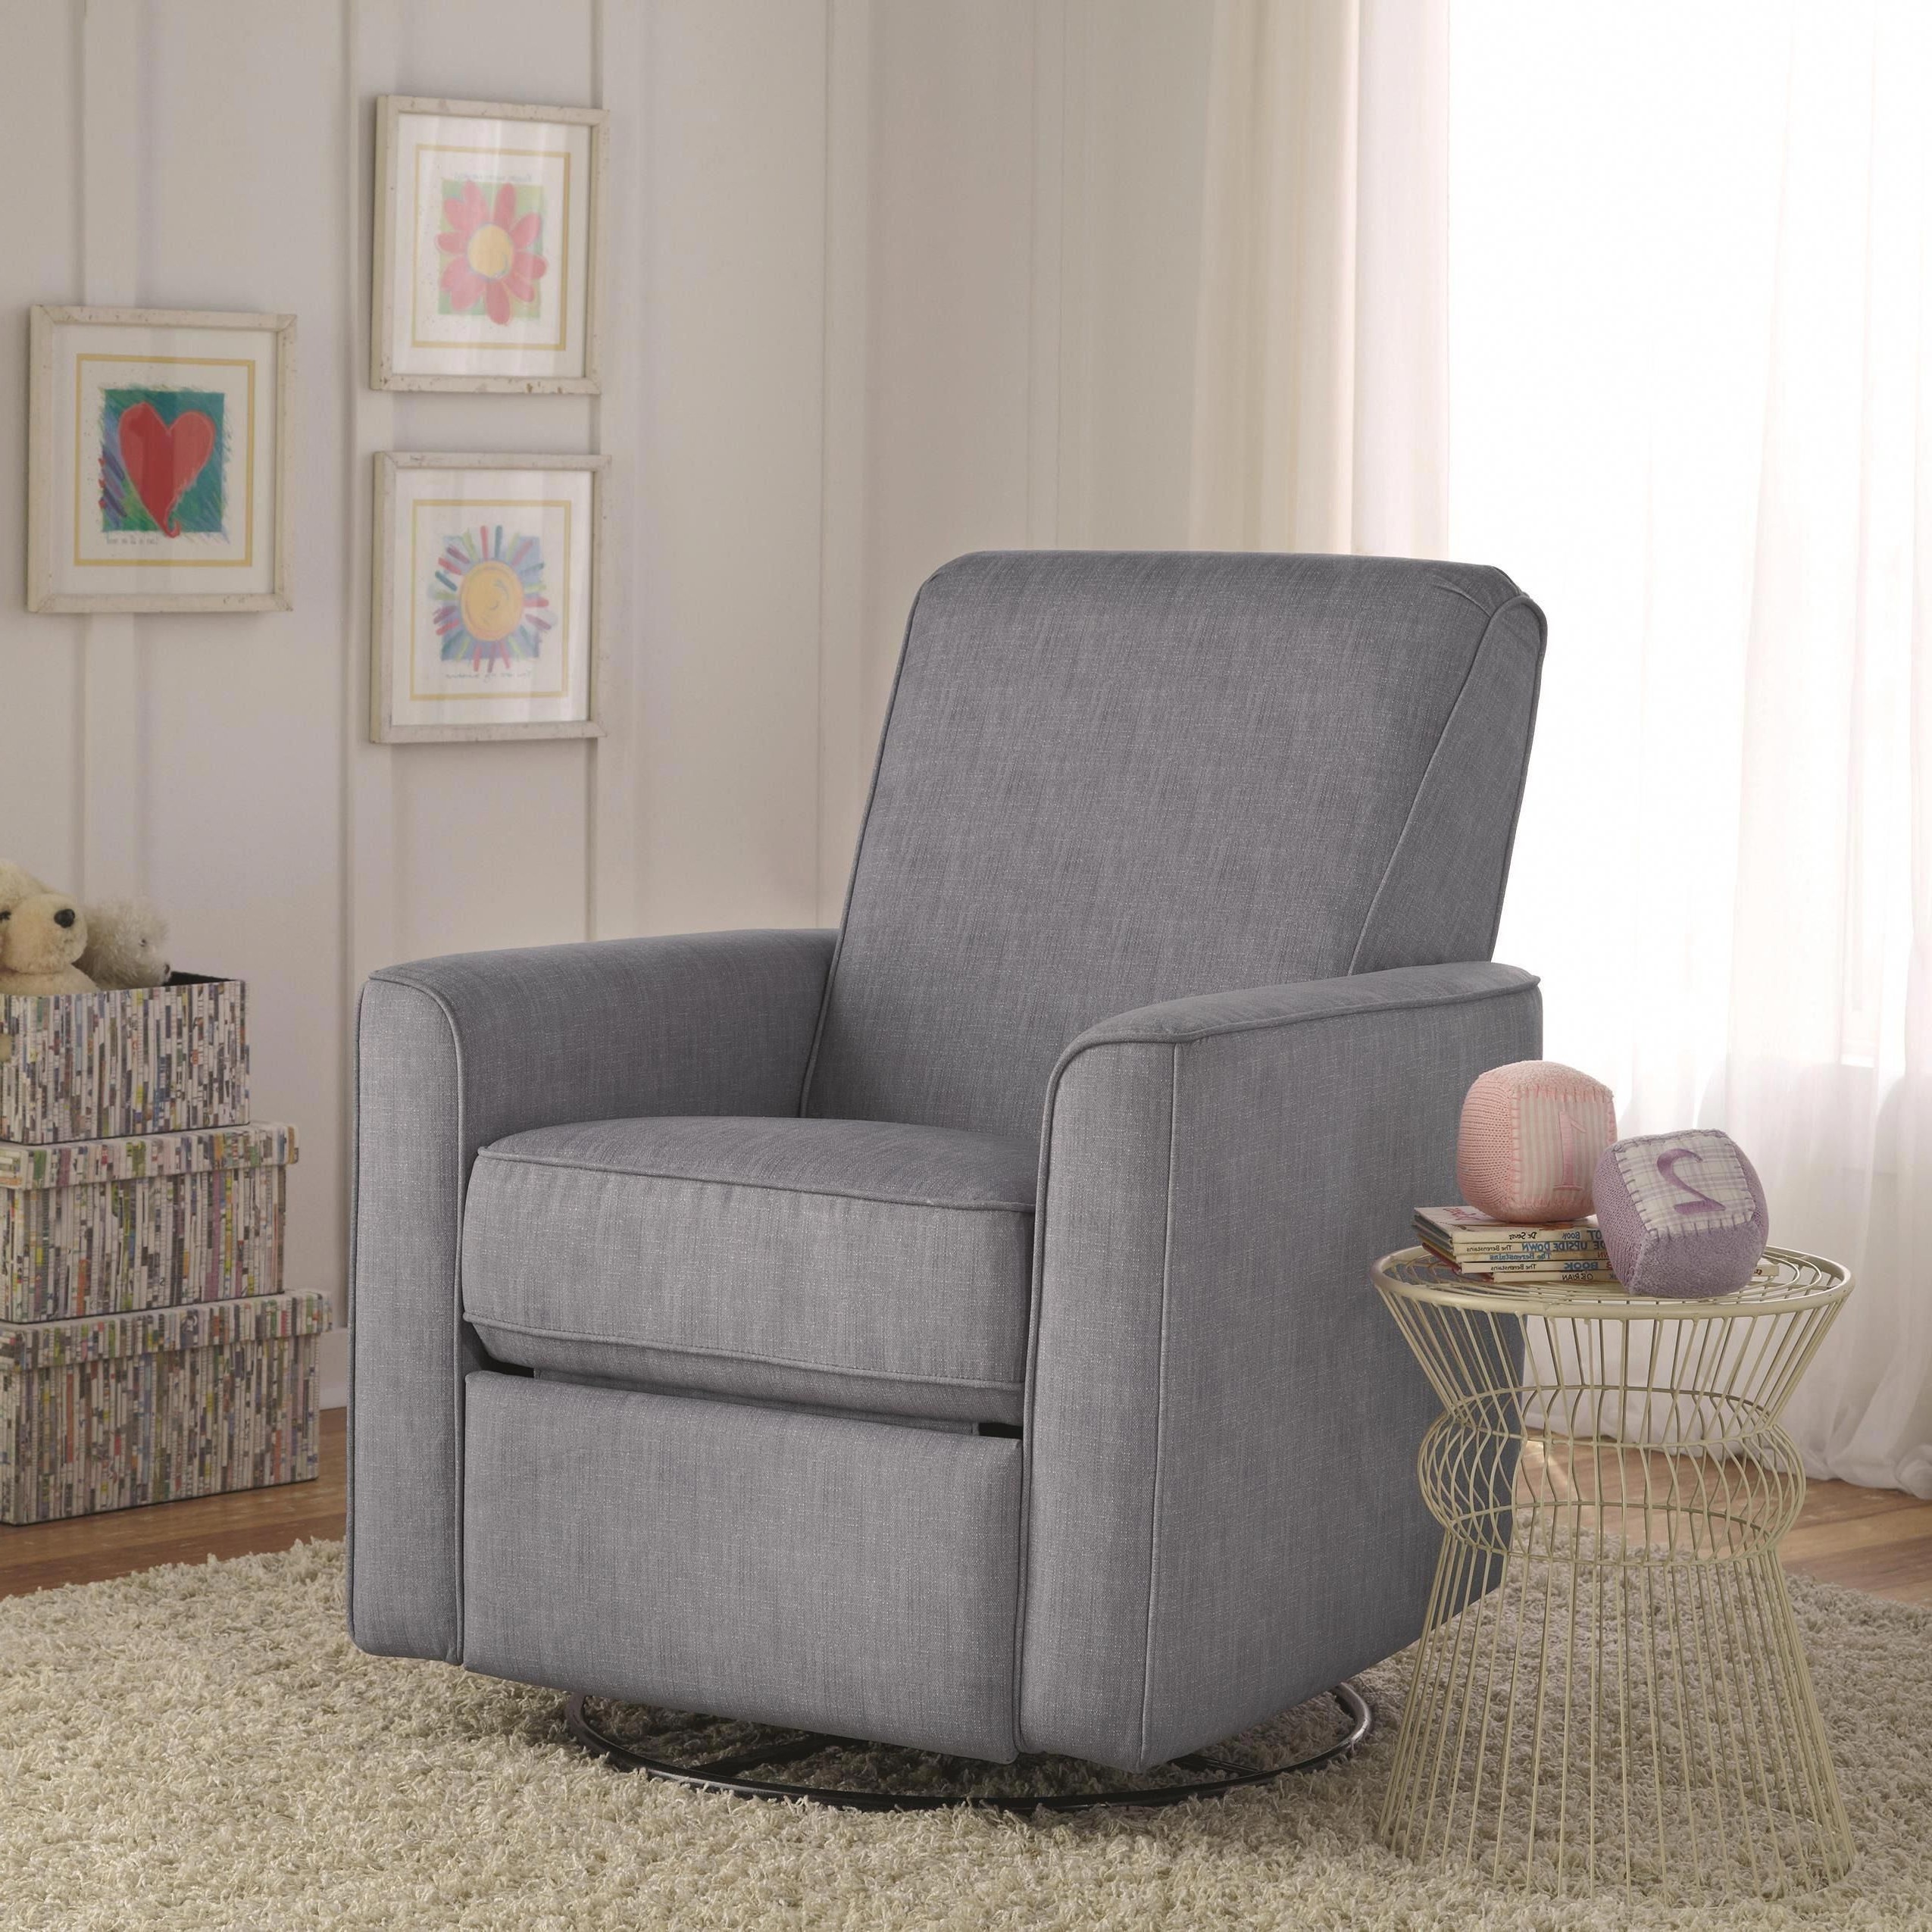 Zoey Grey Nursery Swivel Glider Recliner Chair Is Handcrafted Using In 2018 Decker Ii Fabric Swivel Glider Recliners (View 6 of 20)